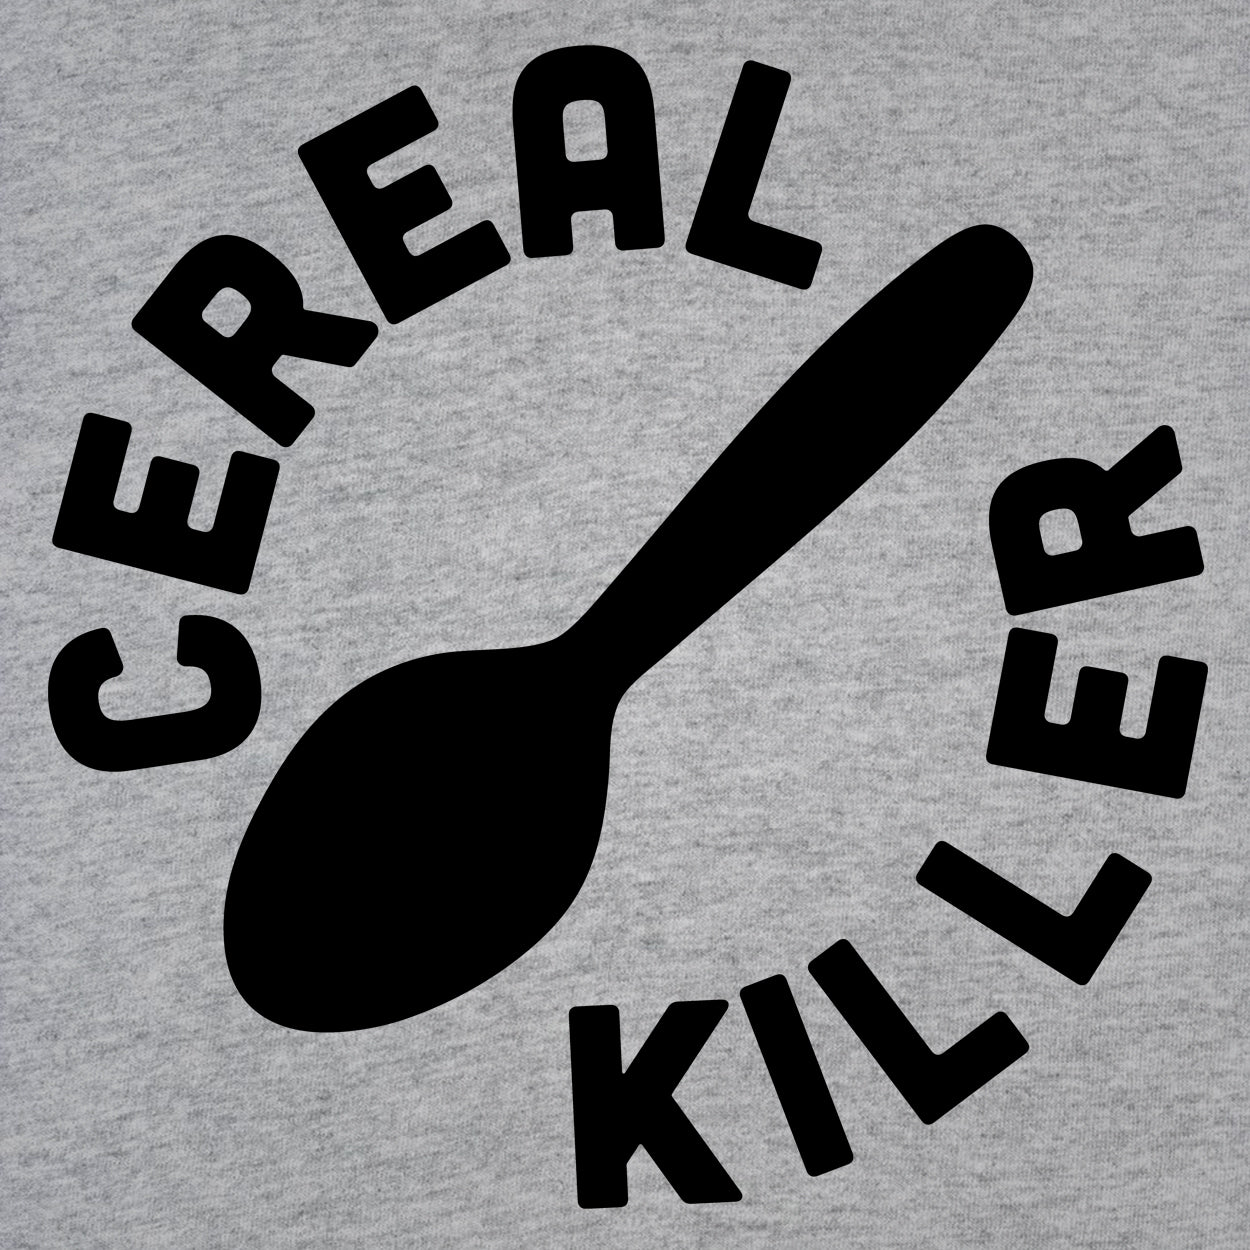 Cereal killer - DonkeyTees